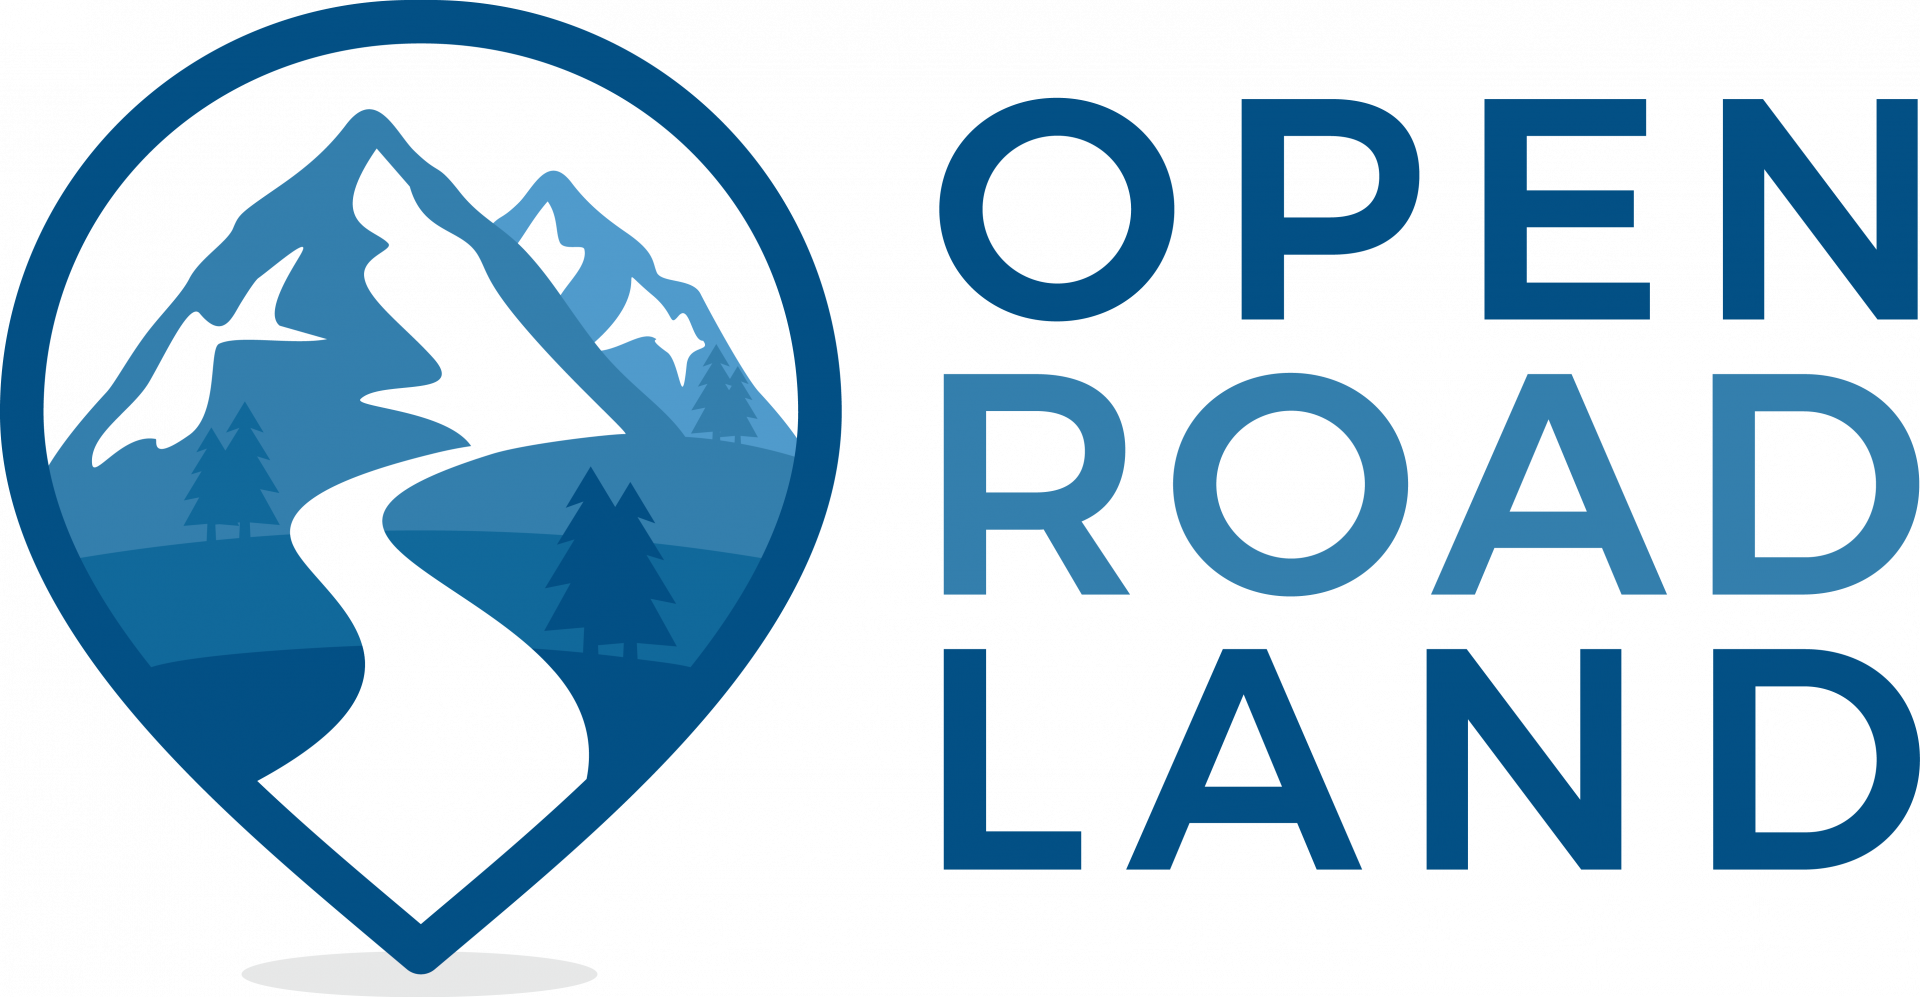 Open Road Land logo